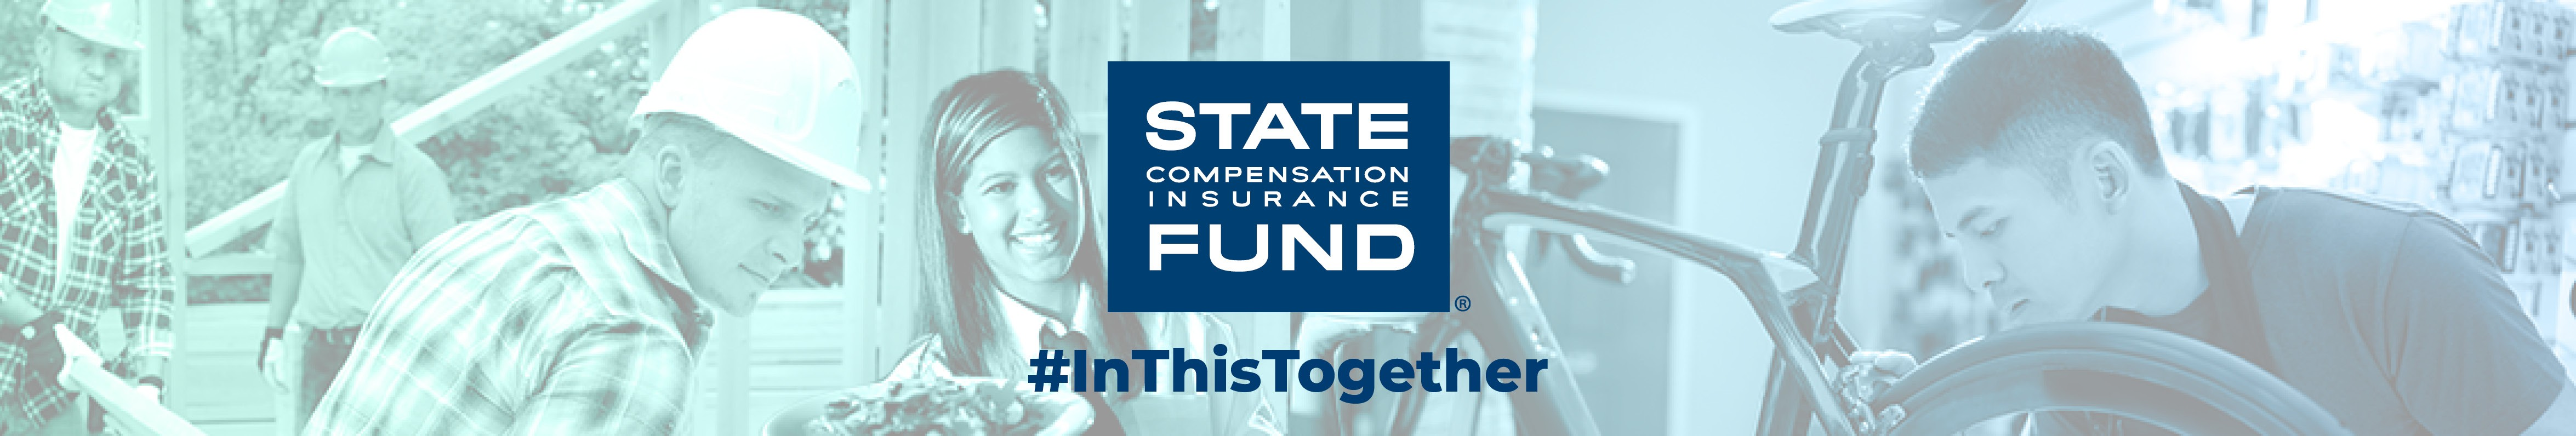 State Compensation Insurance Fund Linkedin